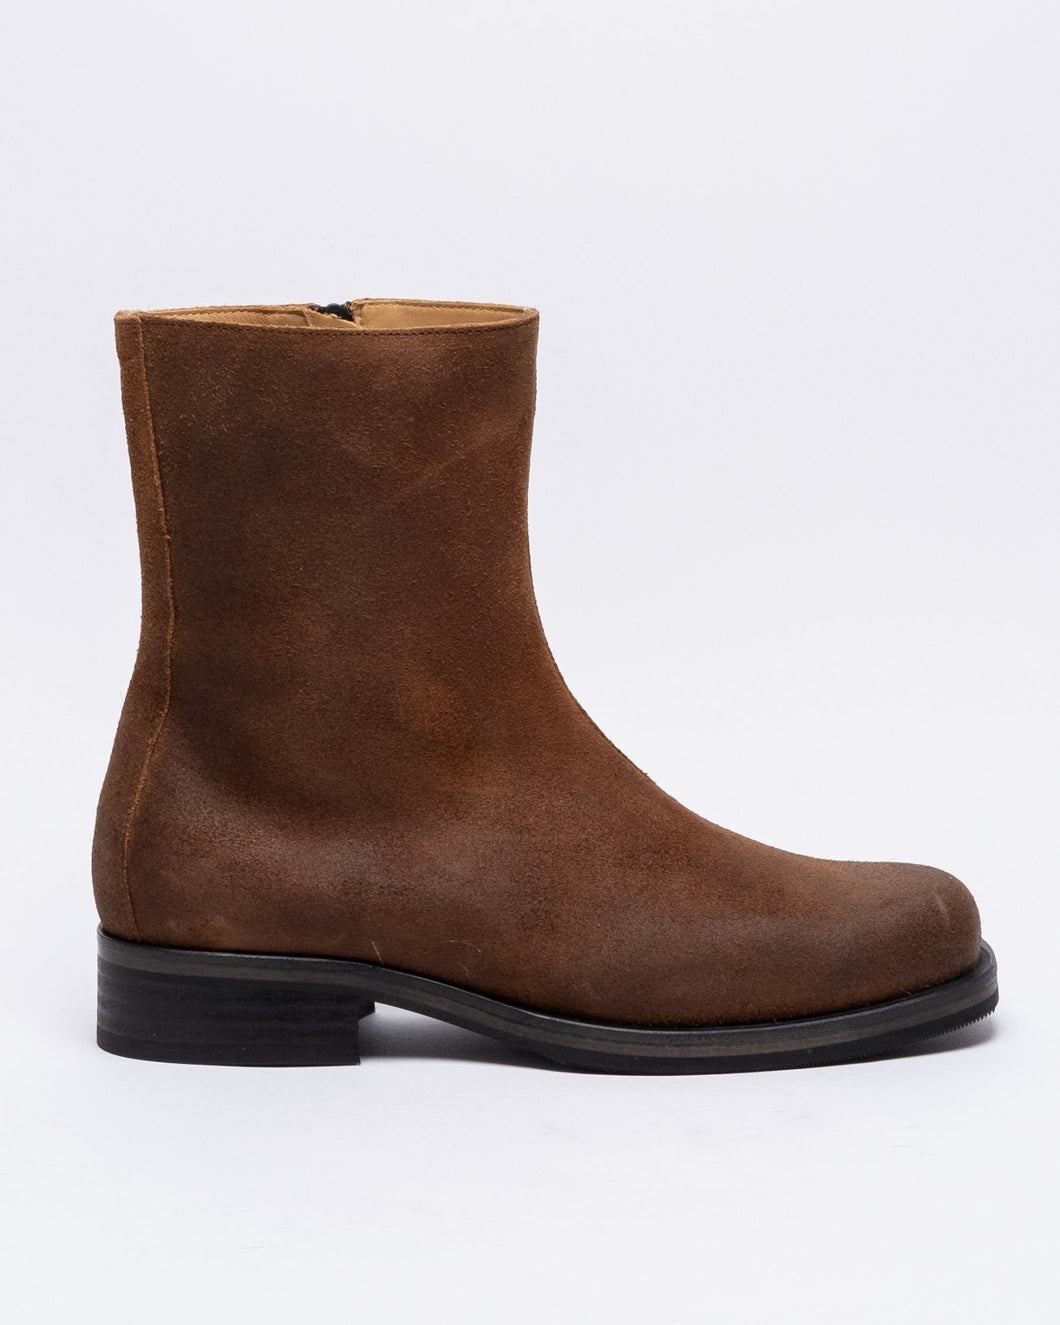 Camion Boot Toffee Brown Leather - Meadow